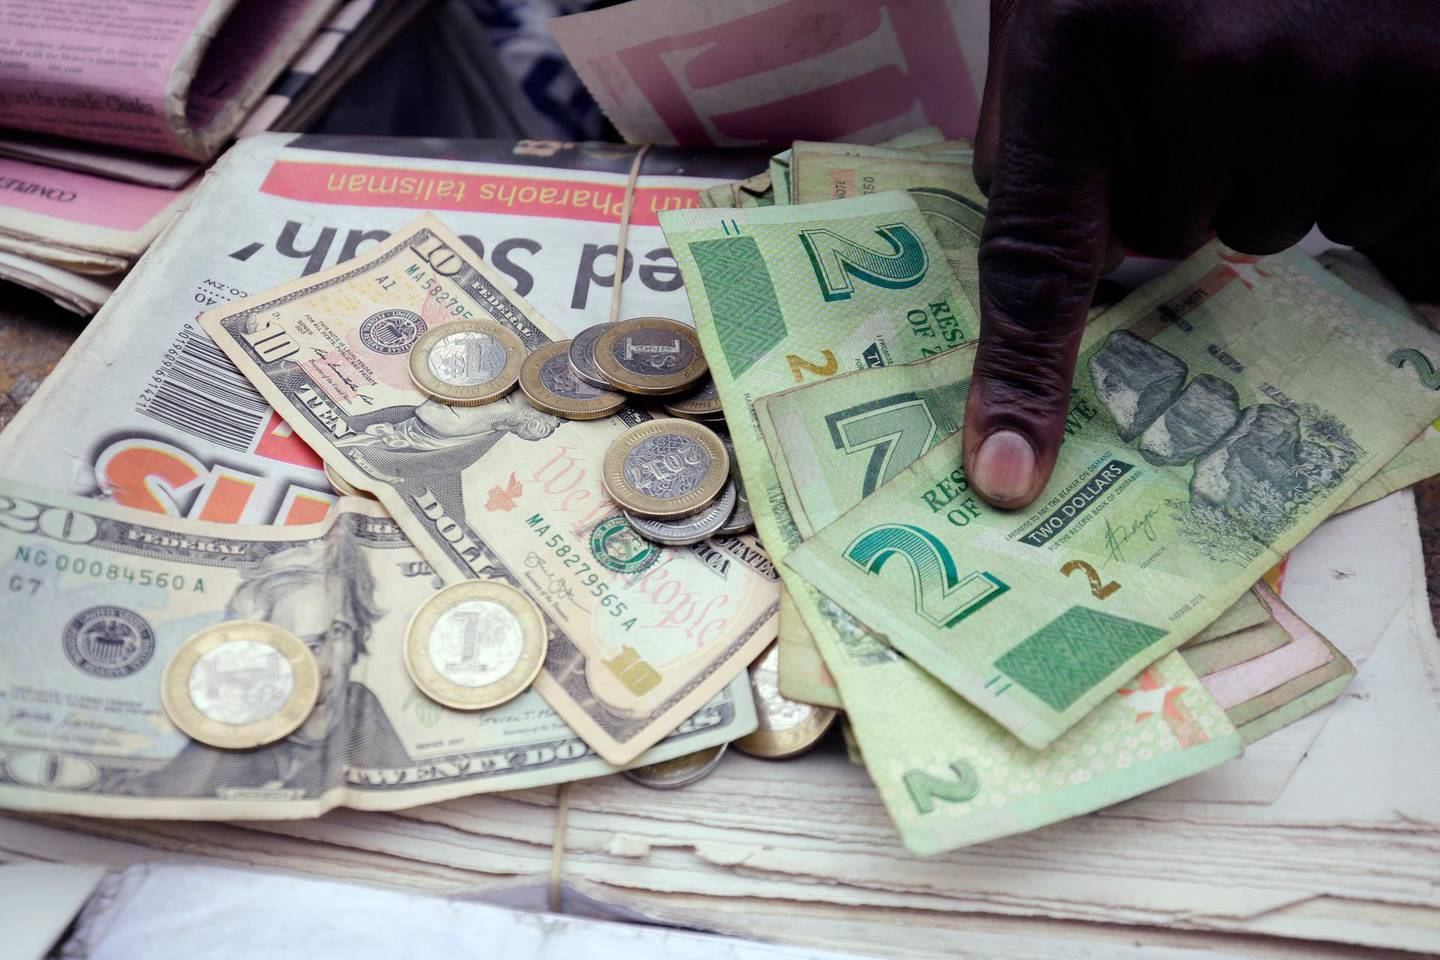 """A man counts Zimbabwean dollar notes and coins next to a ten US dollar note on the streets of Harare, Tuesday, June 25, 2019. Zimbabwe President Emmerson Mnangagwa on Tuesday praised the re-introduction of the Zimbabwe dollar as the sole legal tender in the troubled country as a """"return to normalcy."""" Zimbabwe had for 10 years used the U.S. dollar and other foreign currencies after the Zimbabwean currency was dogged by hyperinflation. (AP Photo/Tsvangirayi Mukwazhi)"""